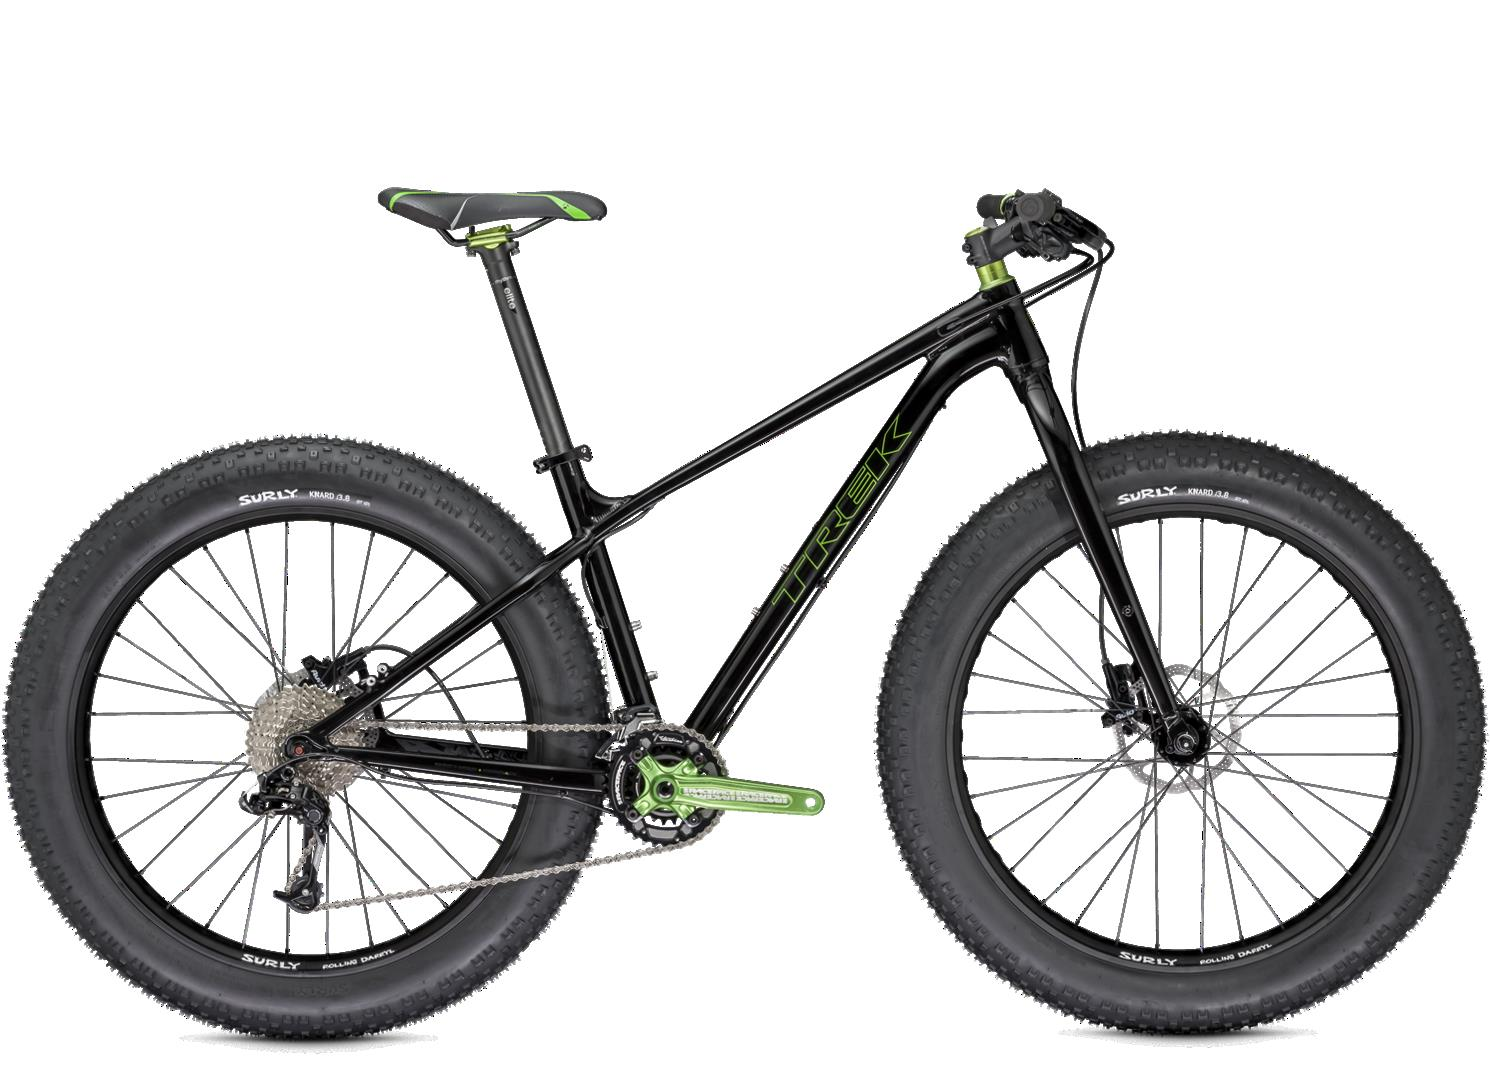 2,960 Trek Farley Fat Bikes Recalled - Singletracks Mountain Bike News